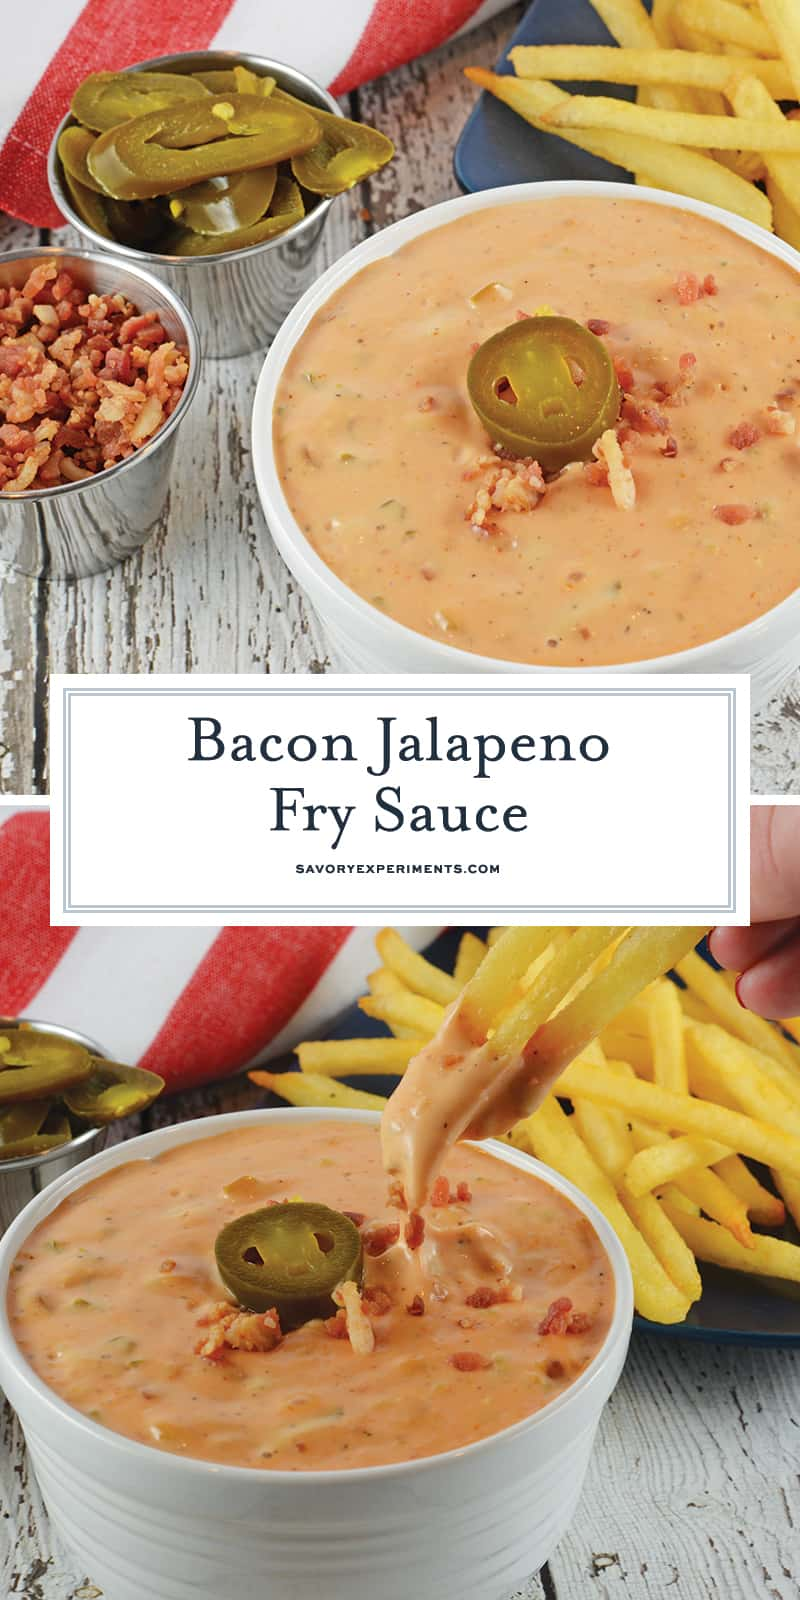 Bacon Jalapeno Fry Sauce is the best spicy dipping sauce for French Fries, hamburgers, hot dogs, onion rings and even deli sandwiches! #frysauce #frysaucerecipes www.savoryexperiments.com